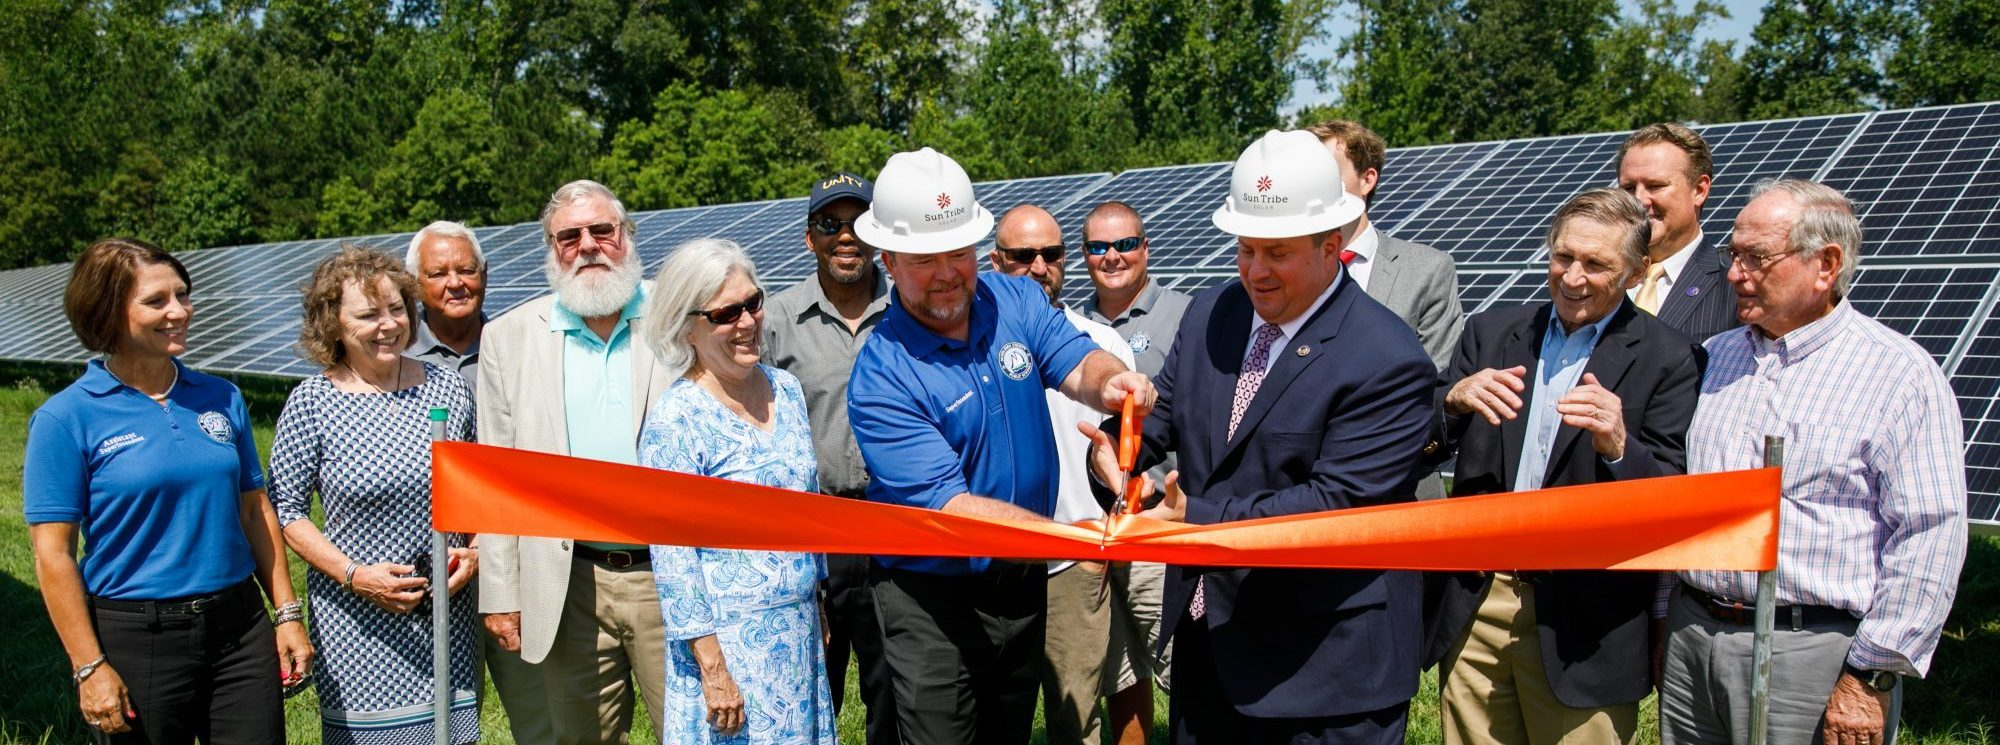 Middlesex County Virginia School Official - Ribbon Cutting for Solar System by Sun Tribe